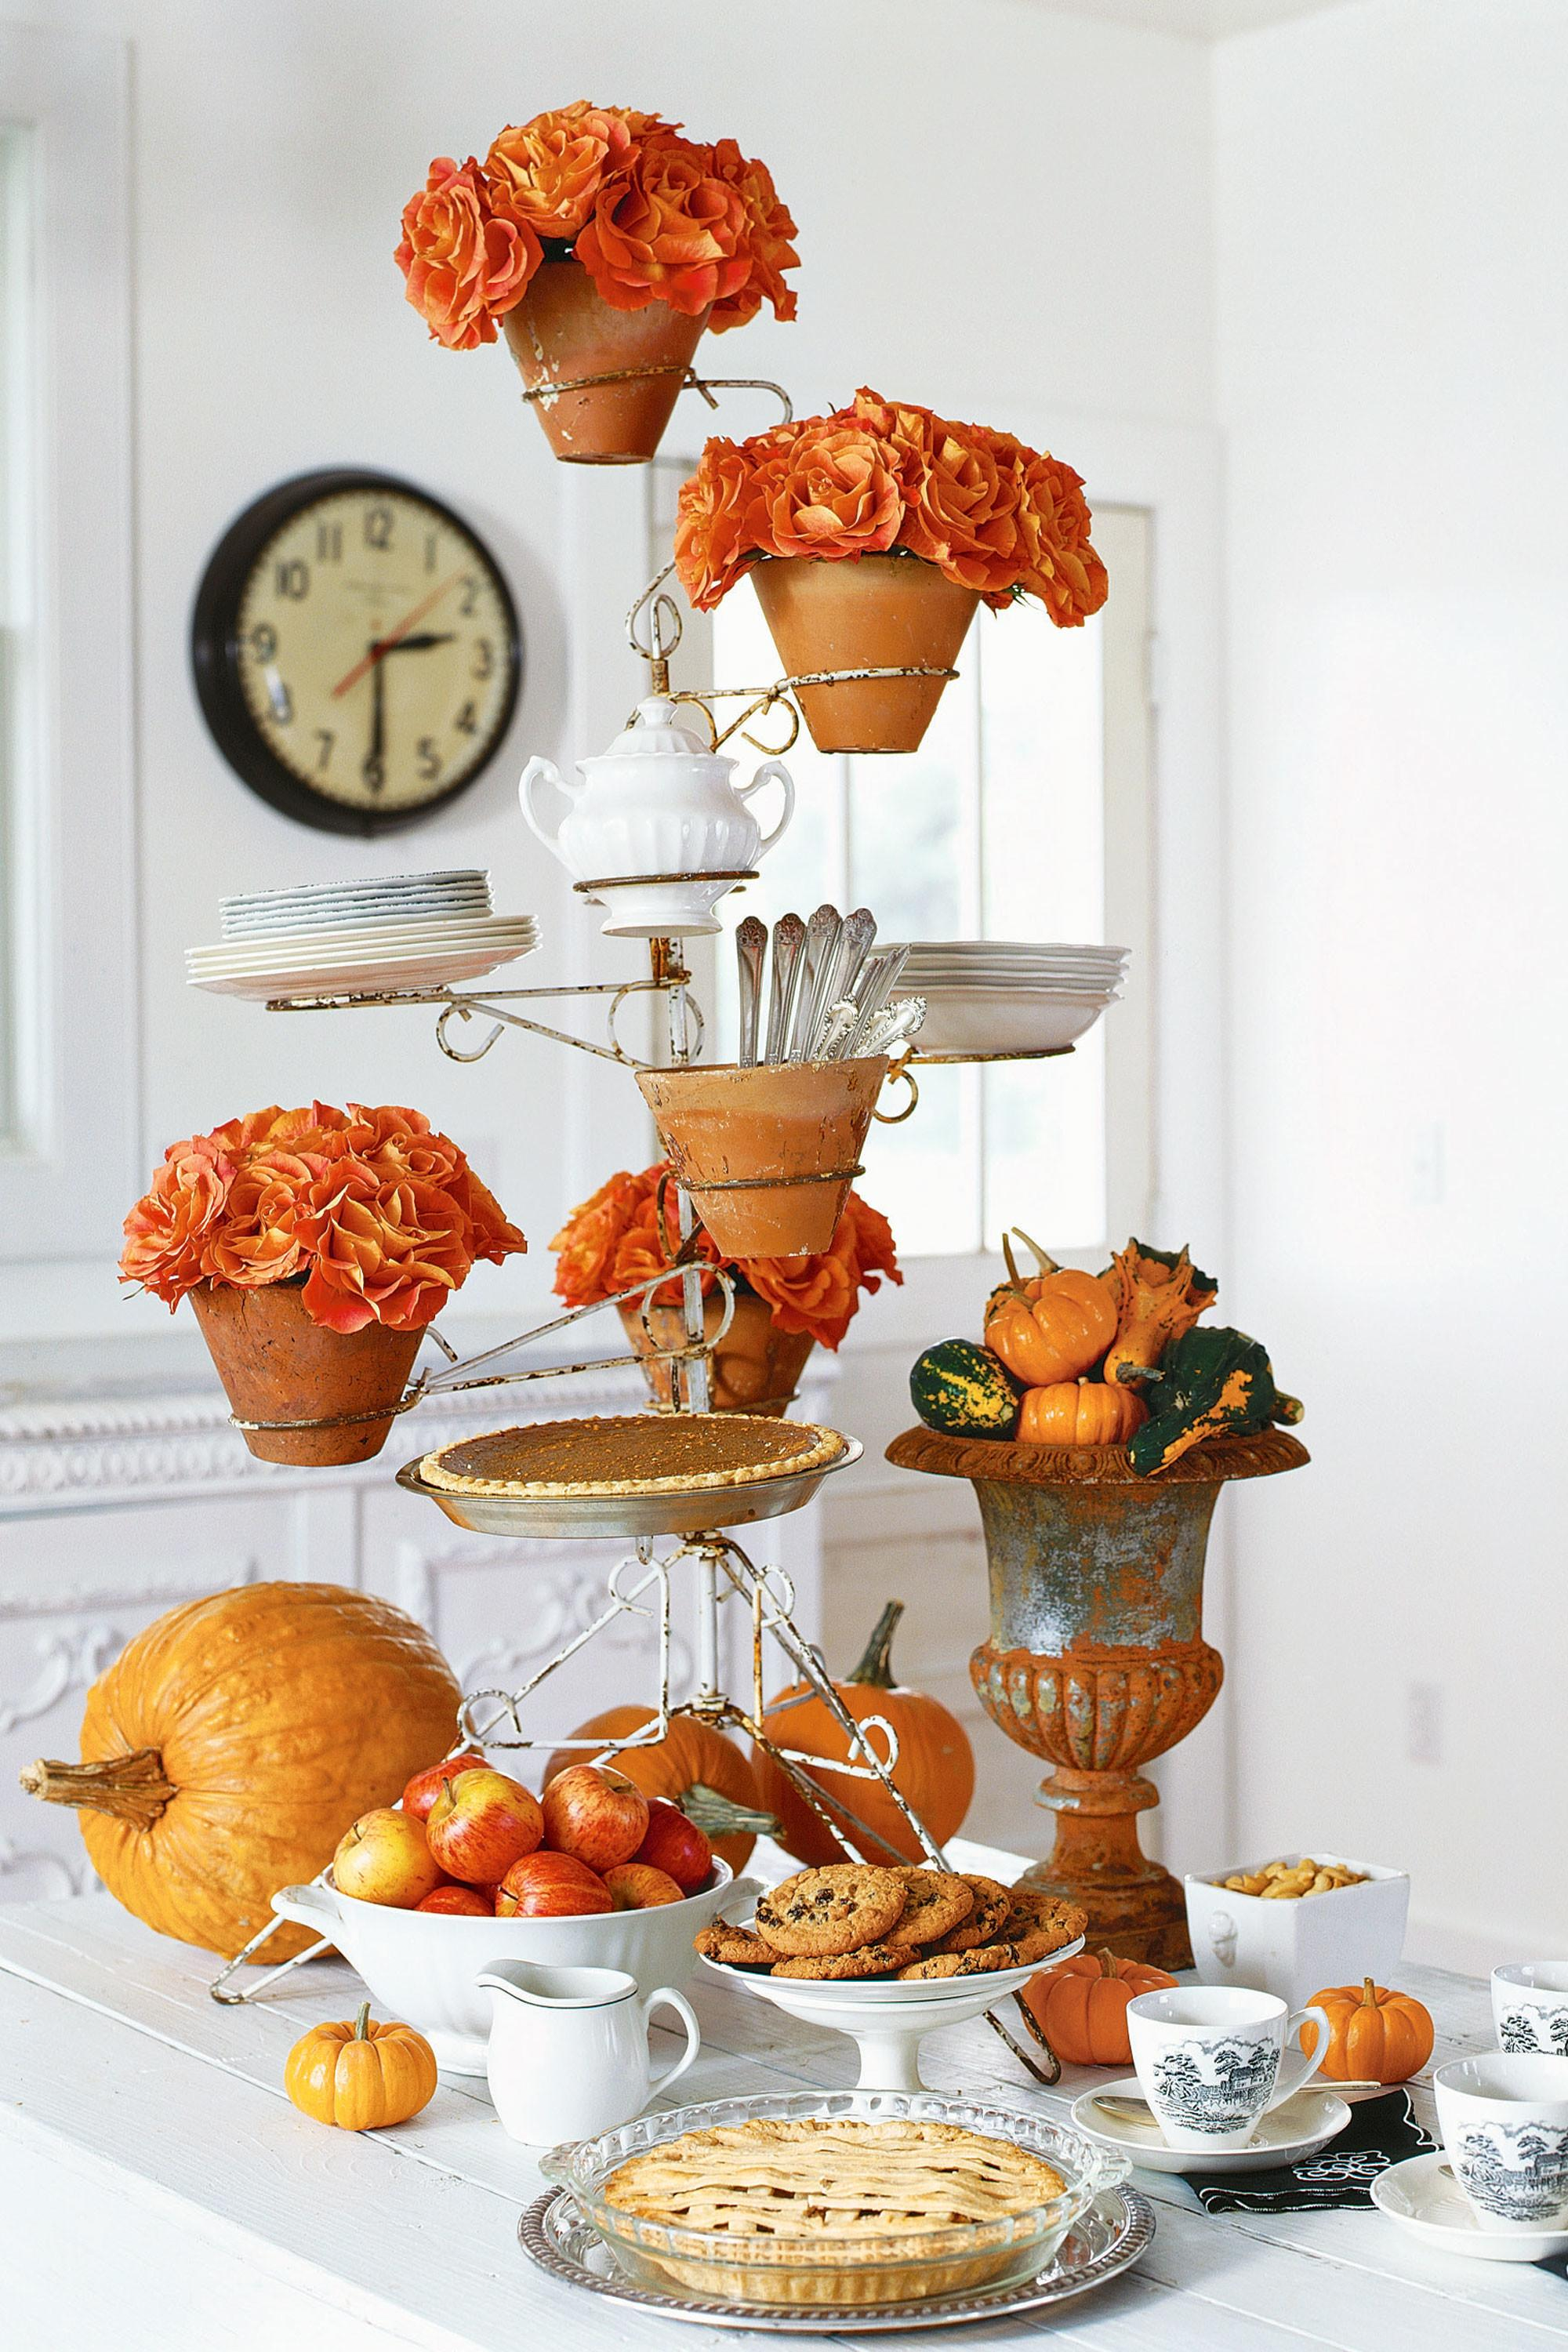 Turn Your Thanksgiving Decor Into Success